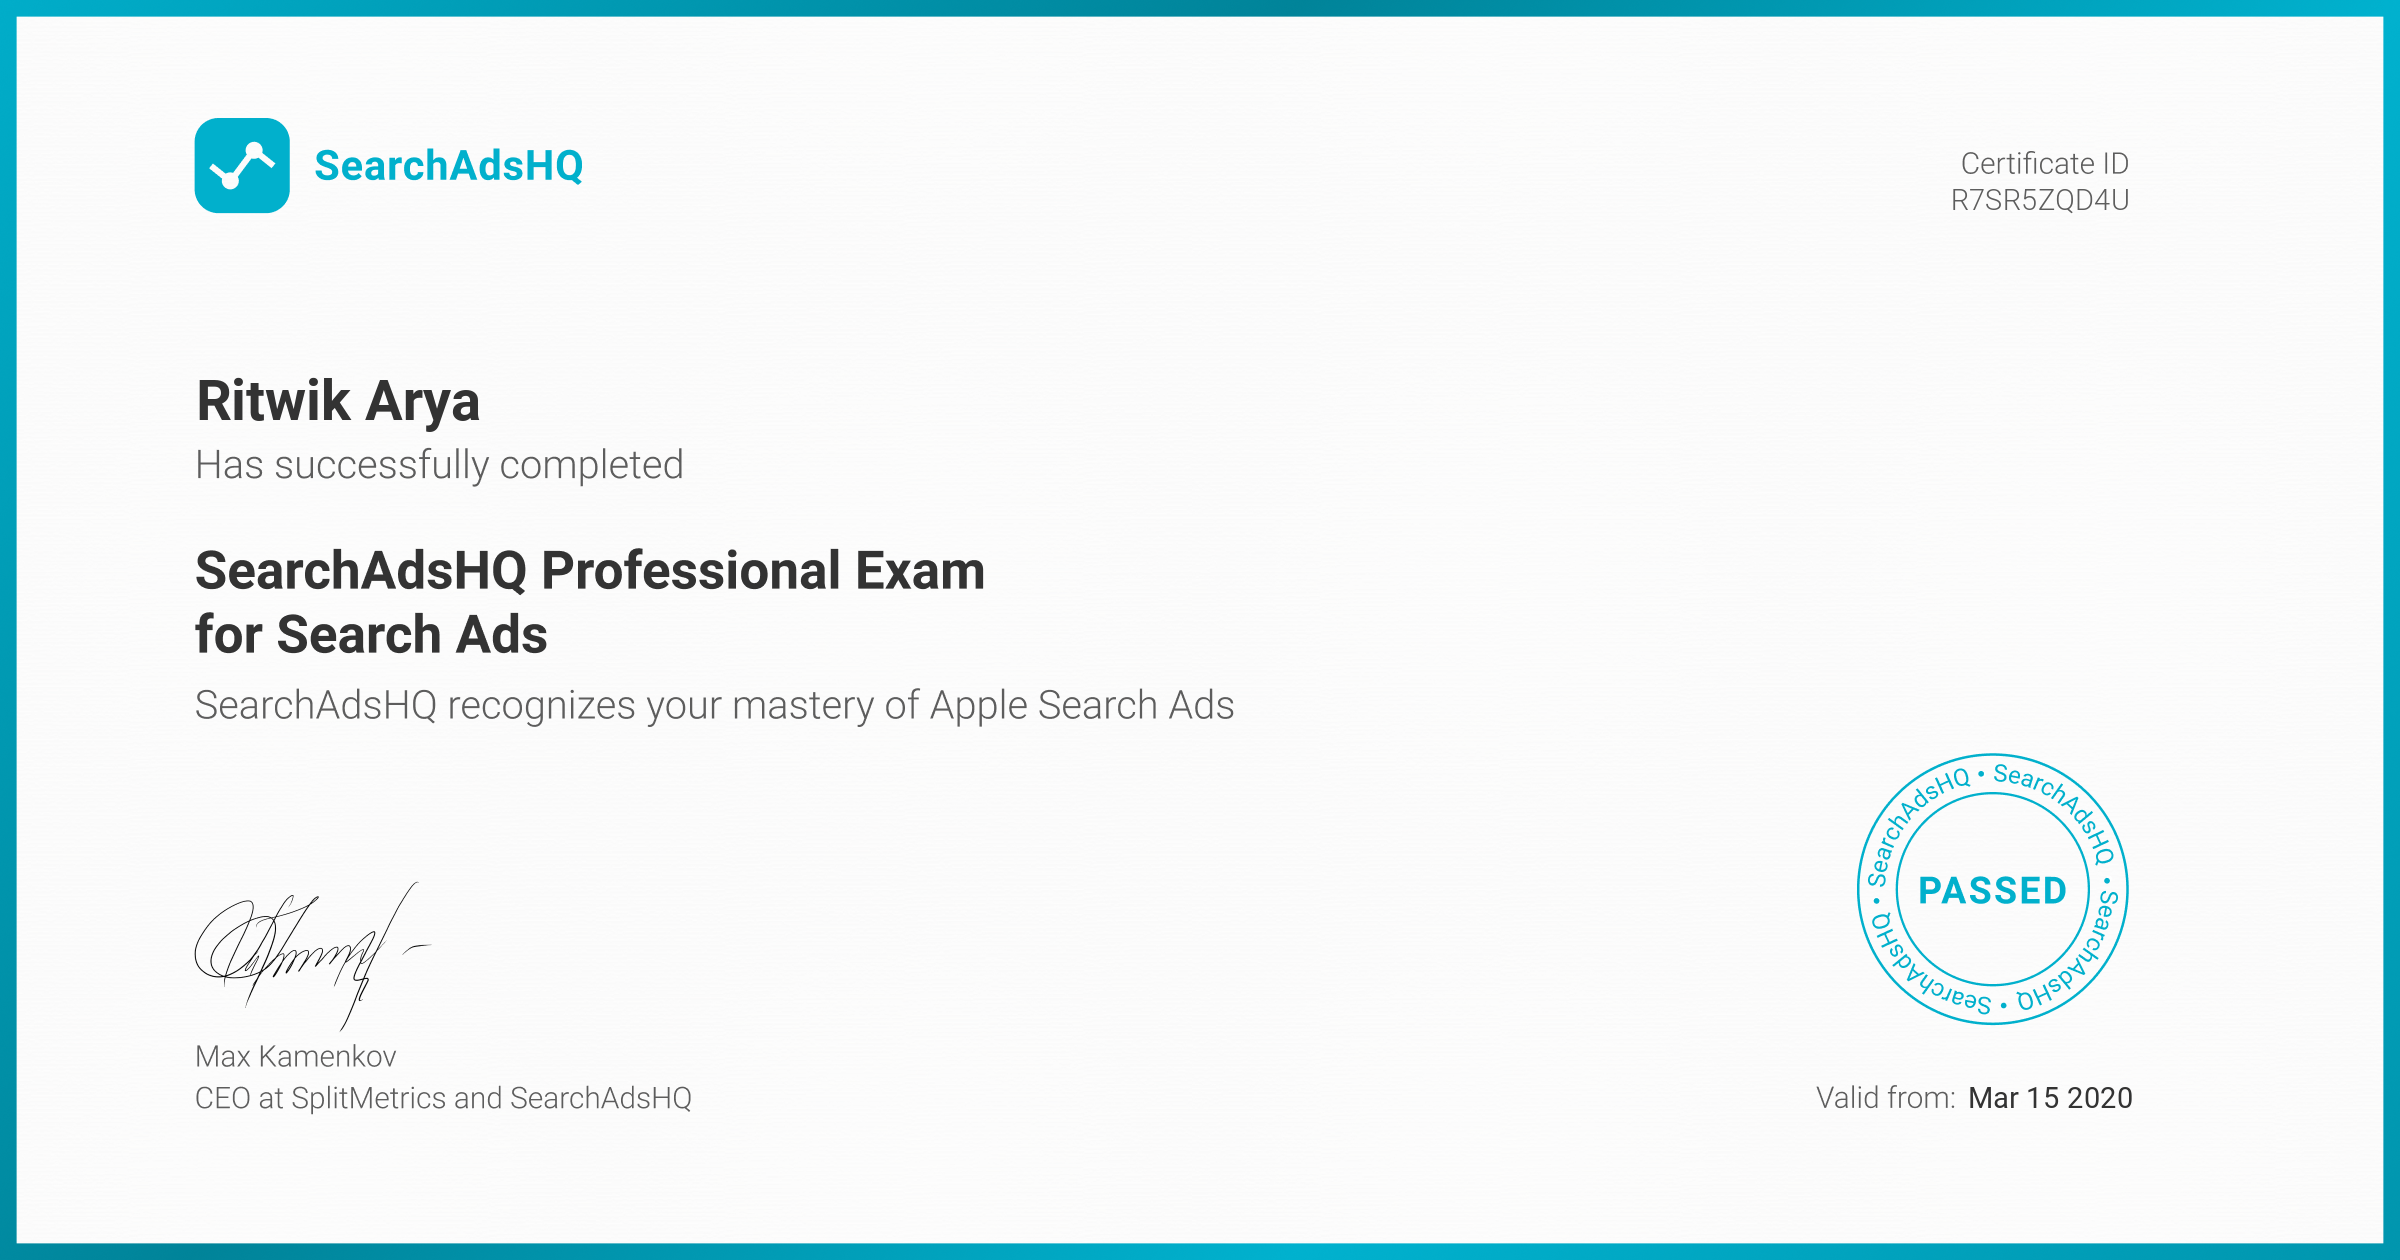 Certificate for Ritwik Arya | SearchAdsHQ Professional Exam for Search Ads